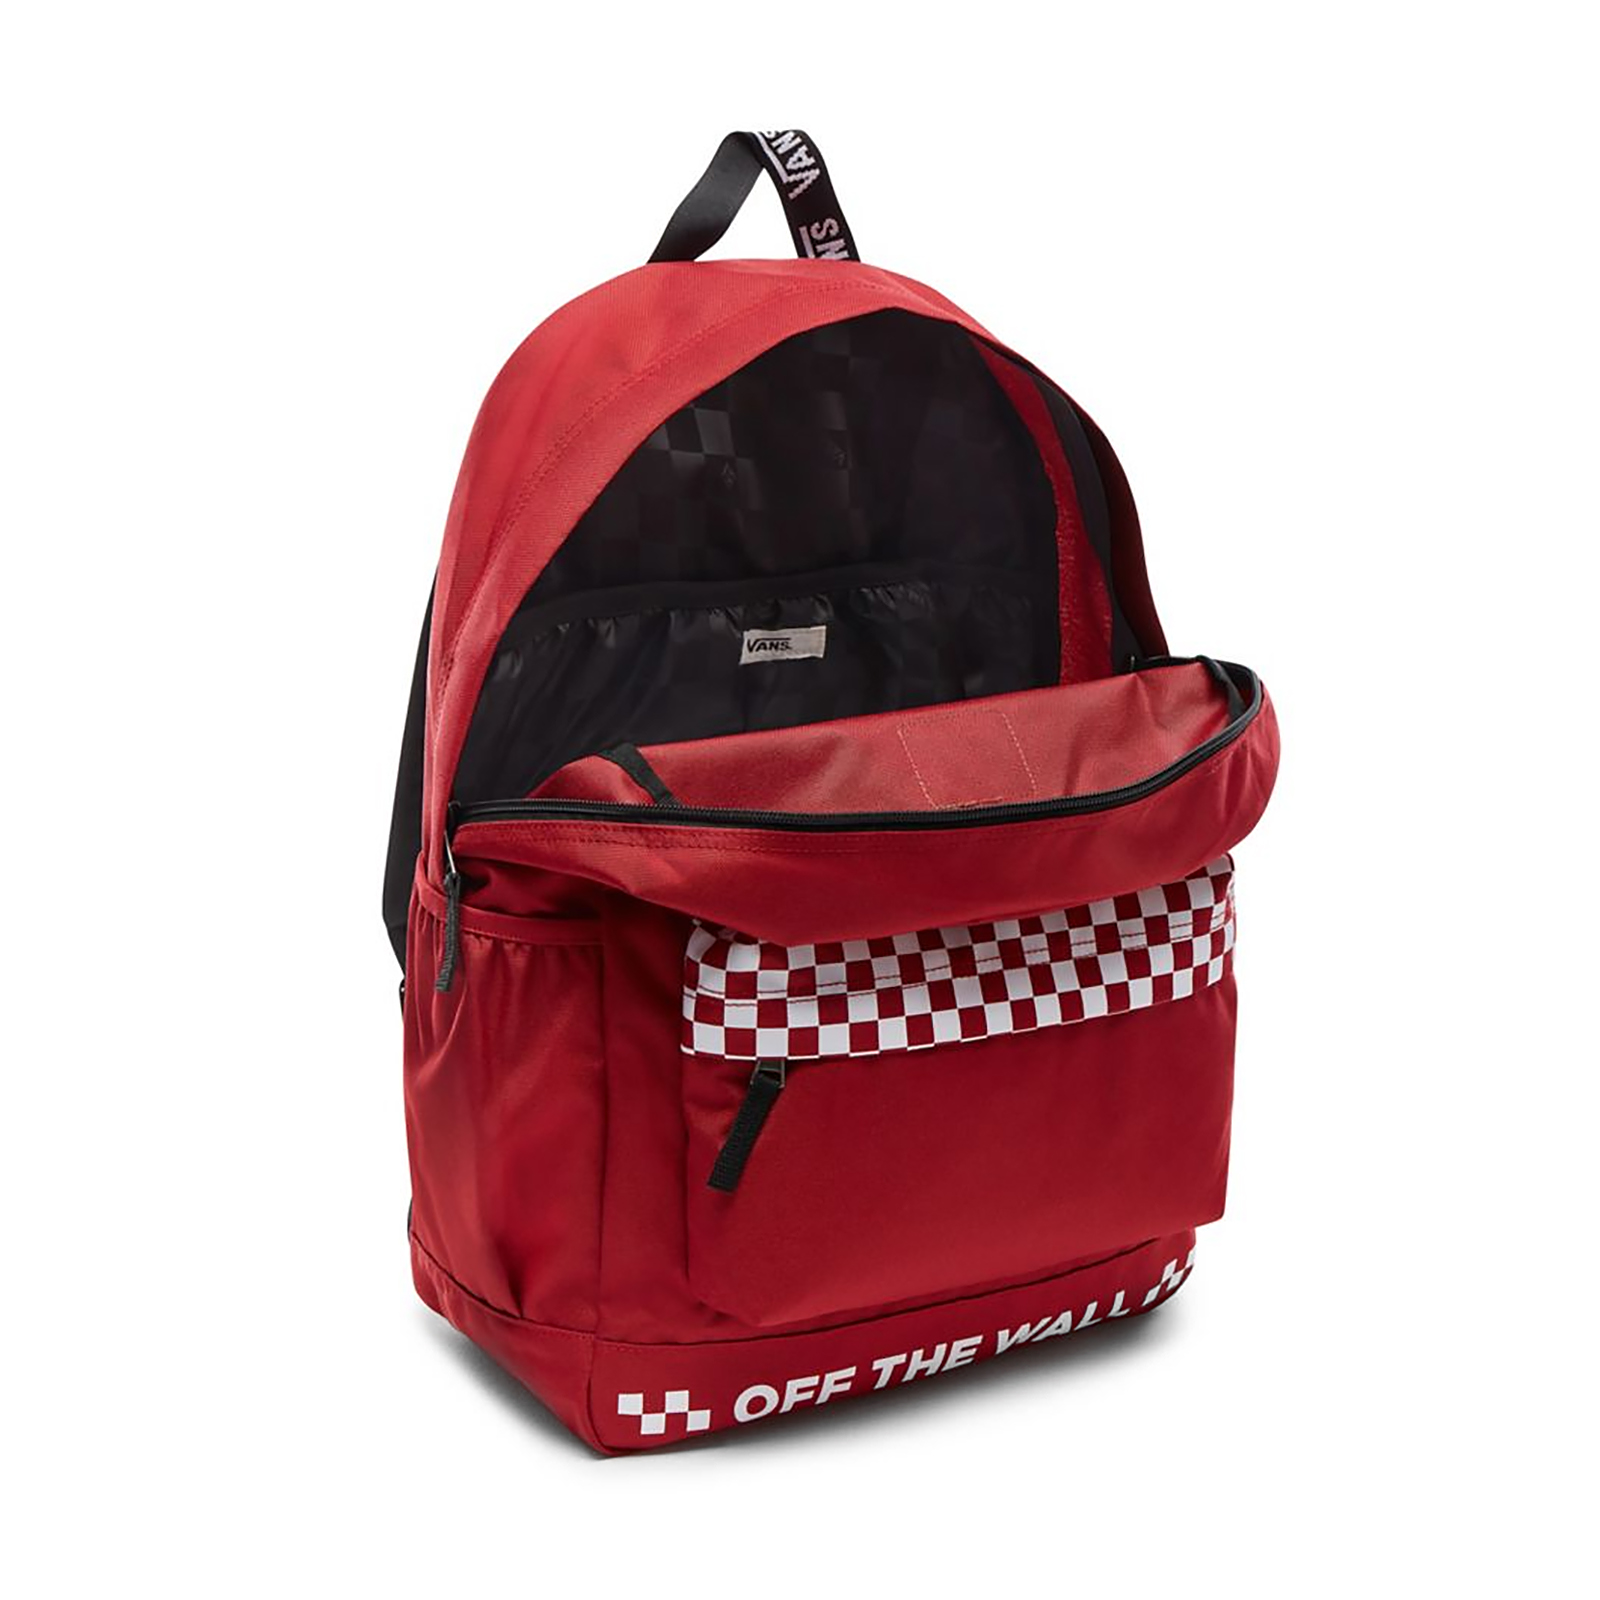 63ba432f4e2ce8 VANS Scooter Sporty Realm Plus Womens Backpack. About this product. Picture  1 of 3  Picture 2 of 3  Picture 3 of 3